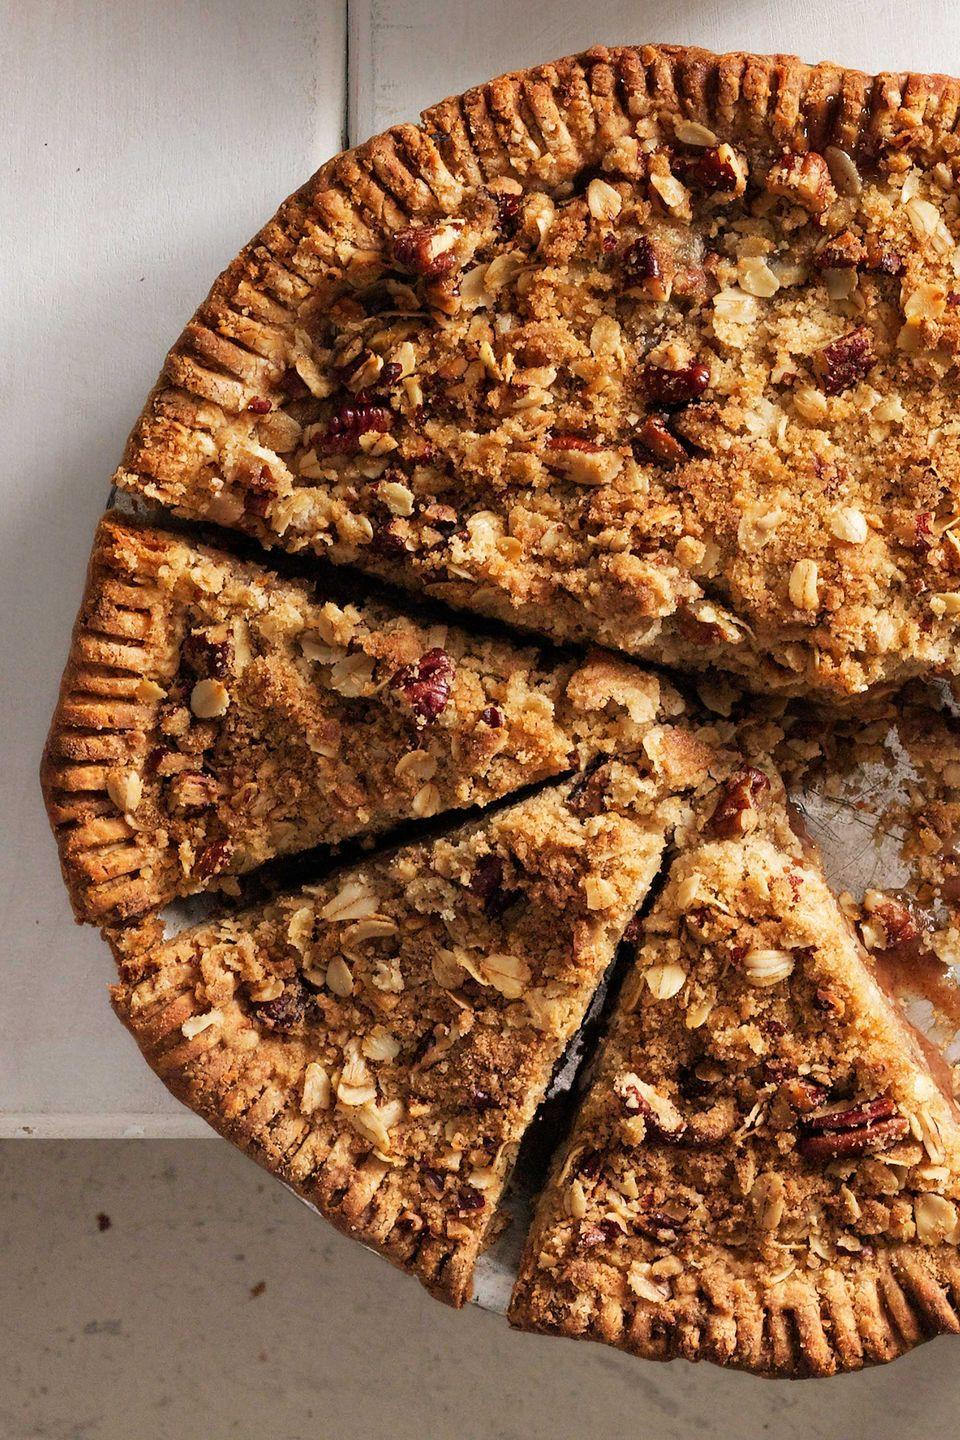 """<p>Guests won't be able to resist gobbling up this fruity, crumbly pie.</p><p><strong><a href=""""https://www.countryliving.com/food-drinks/recipes/a5620/pear-crumb-pie-recipe-clx0914/"""" rel=""""nofollow noopener"""" target=""""_blank"""" data-ylk=""""slk:Get the recipe"""" class=""""link rapid-noclick-resp"""">Get the recipe</a>.</strong></p>"""